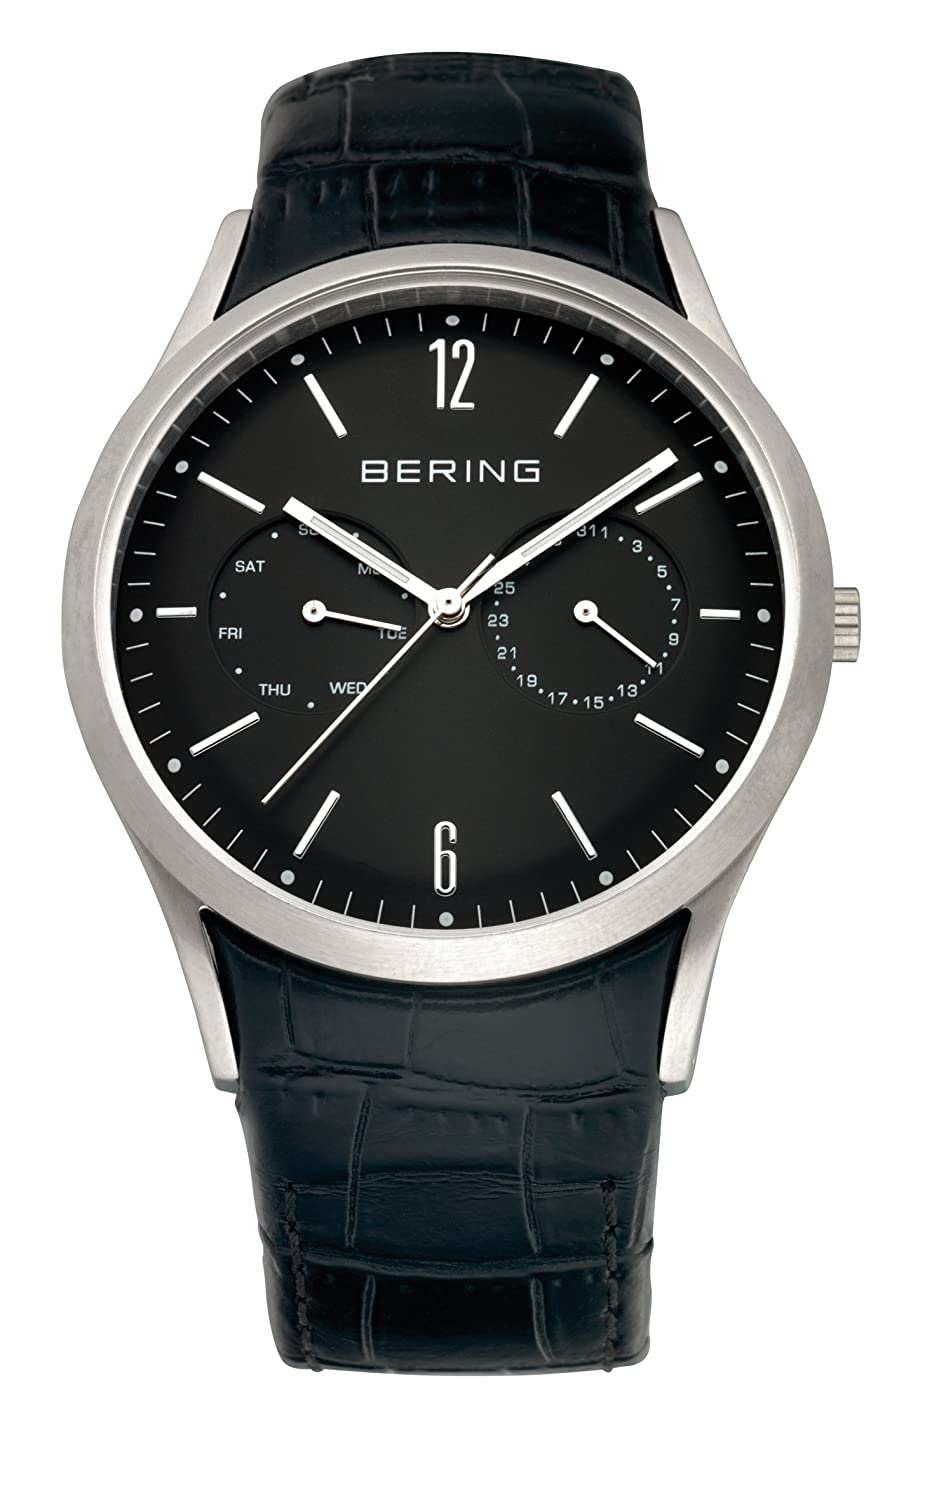 Amazon.com: BERING Time 11839-402 Classic Collection Watch with Leather Band and Scratch Resistant Sapphire Crystal. Designed in Denmark.: Watches